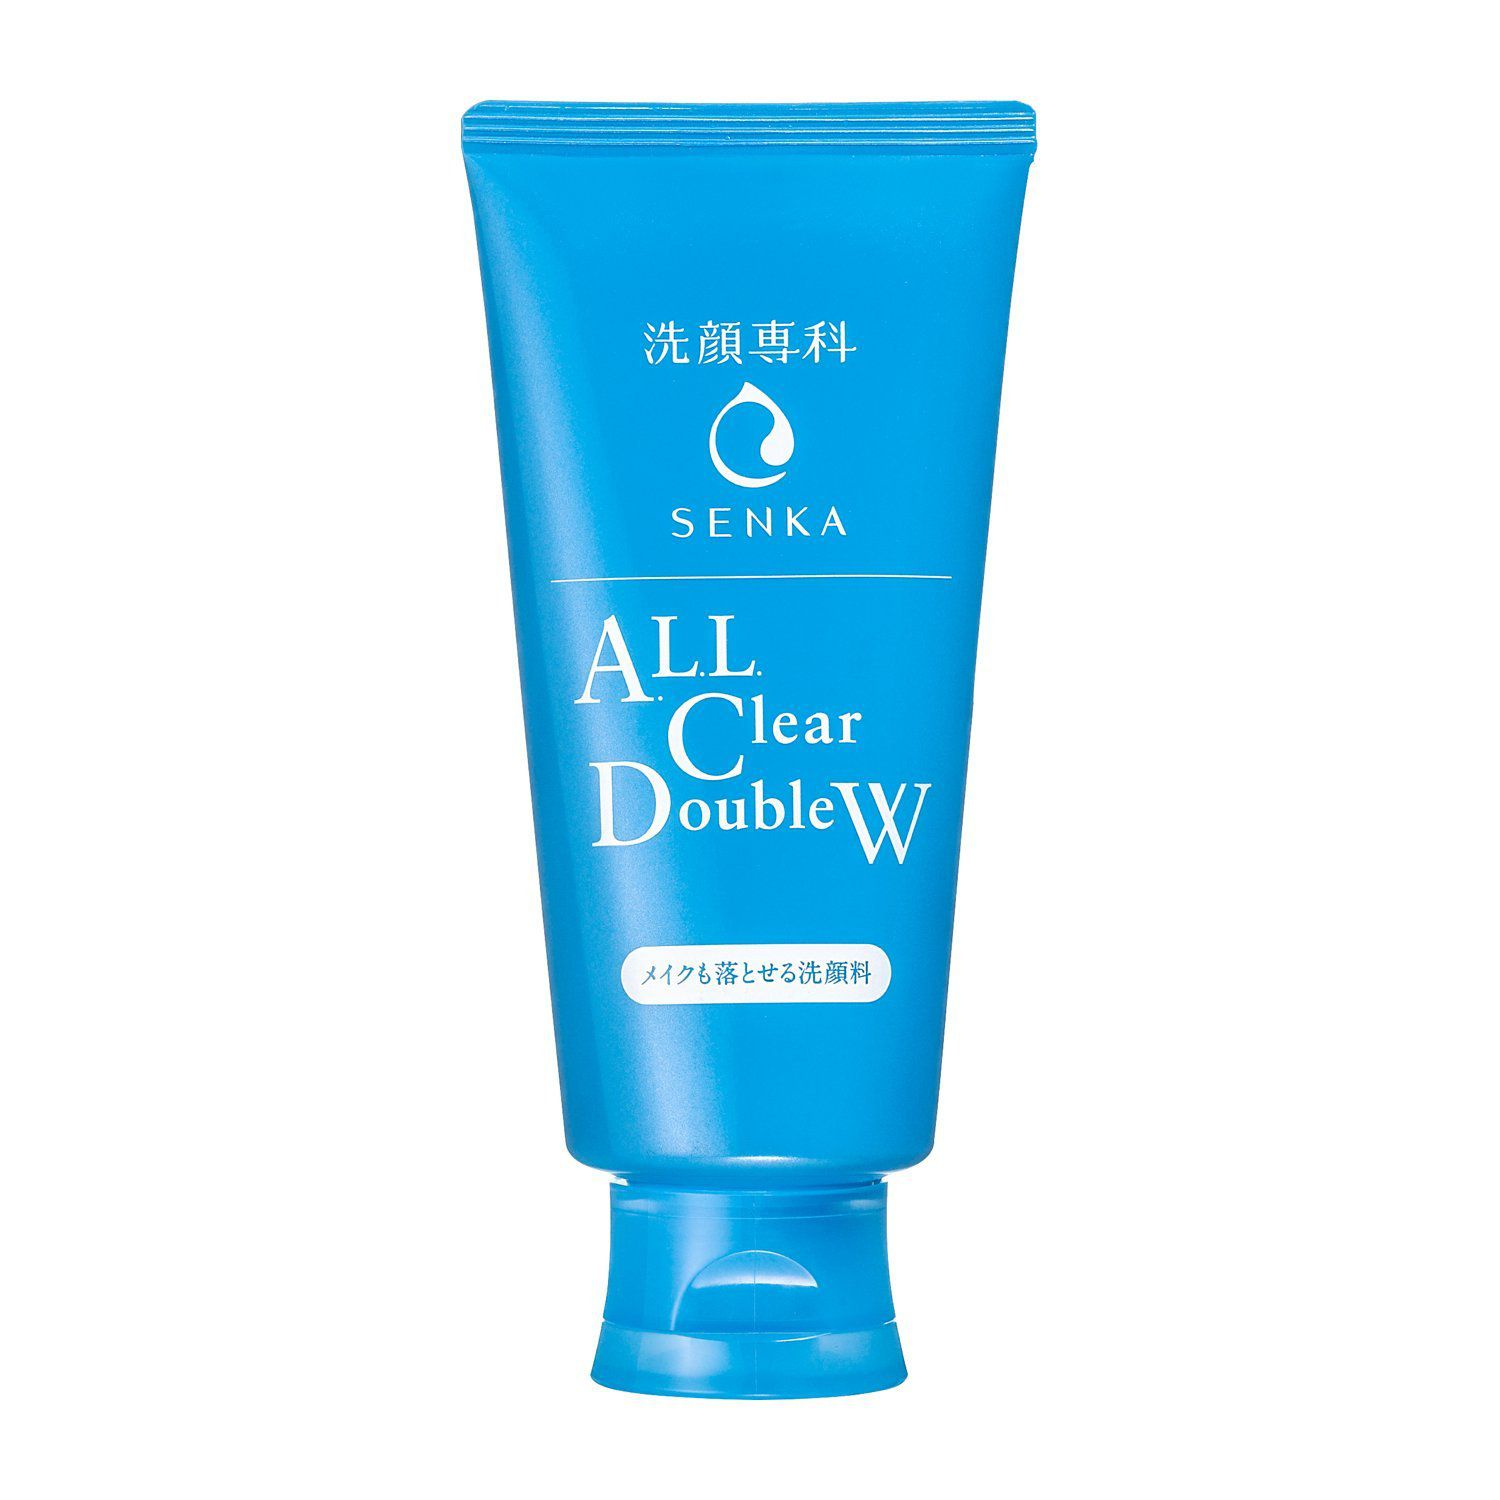 Shiseido Senka All Clear Double W 120g